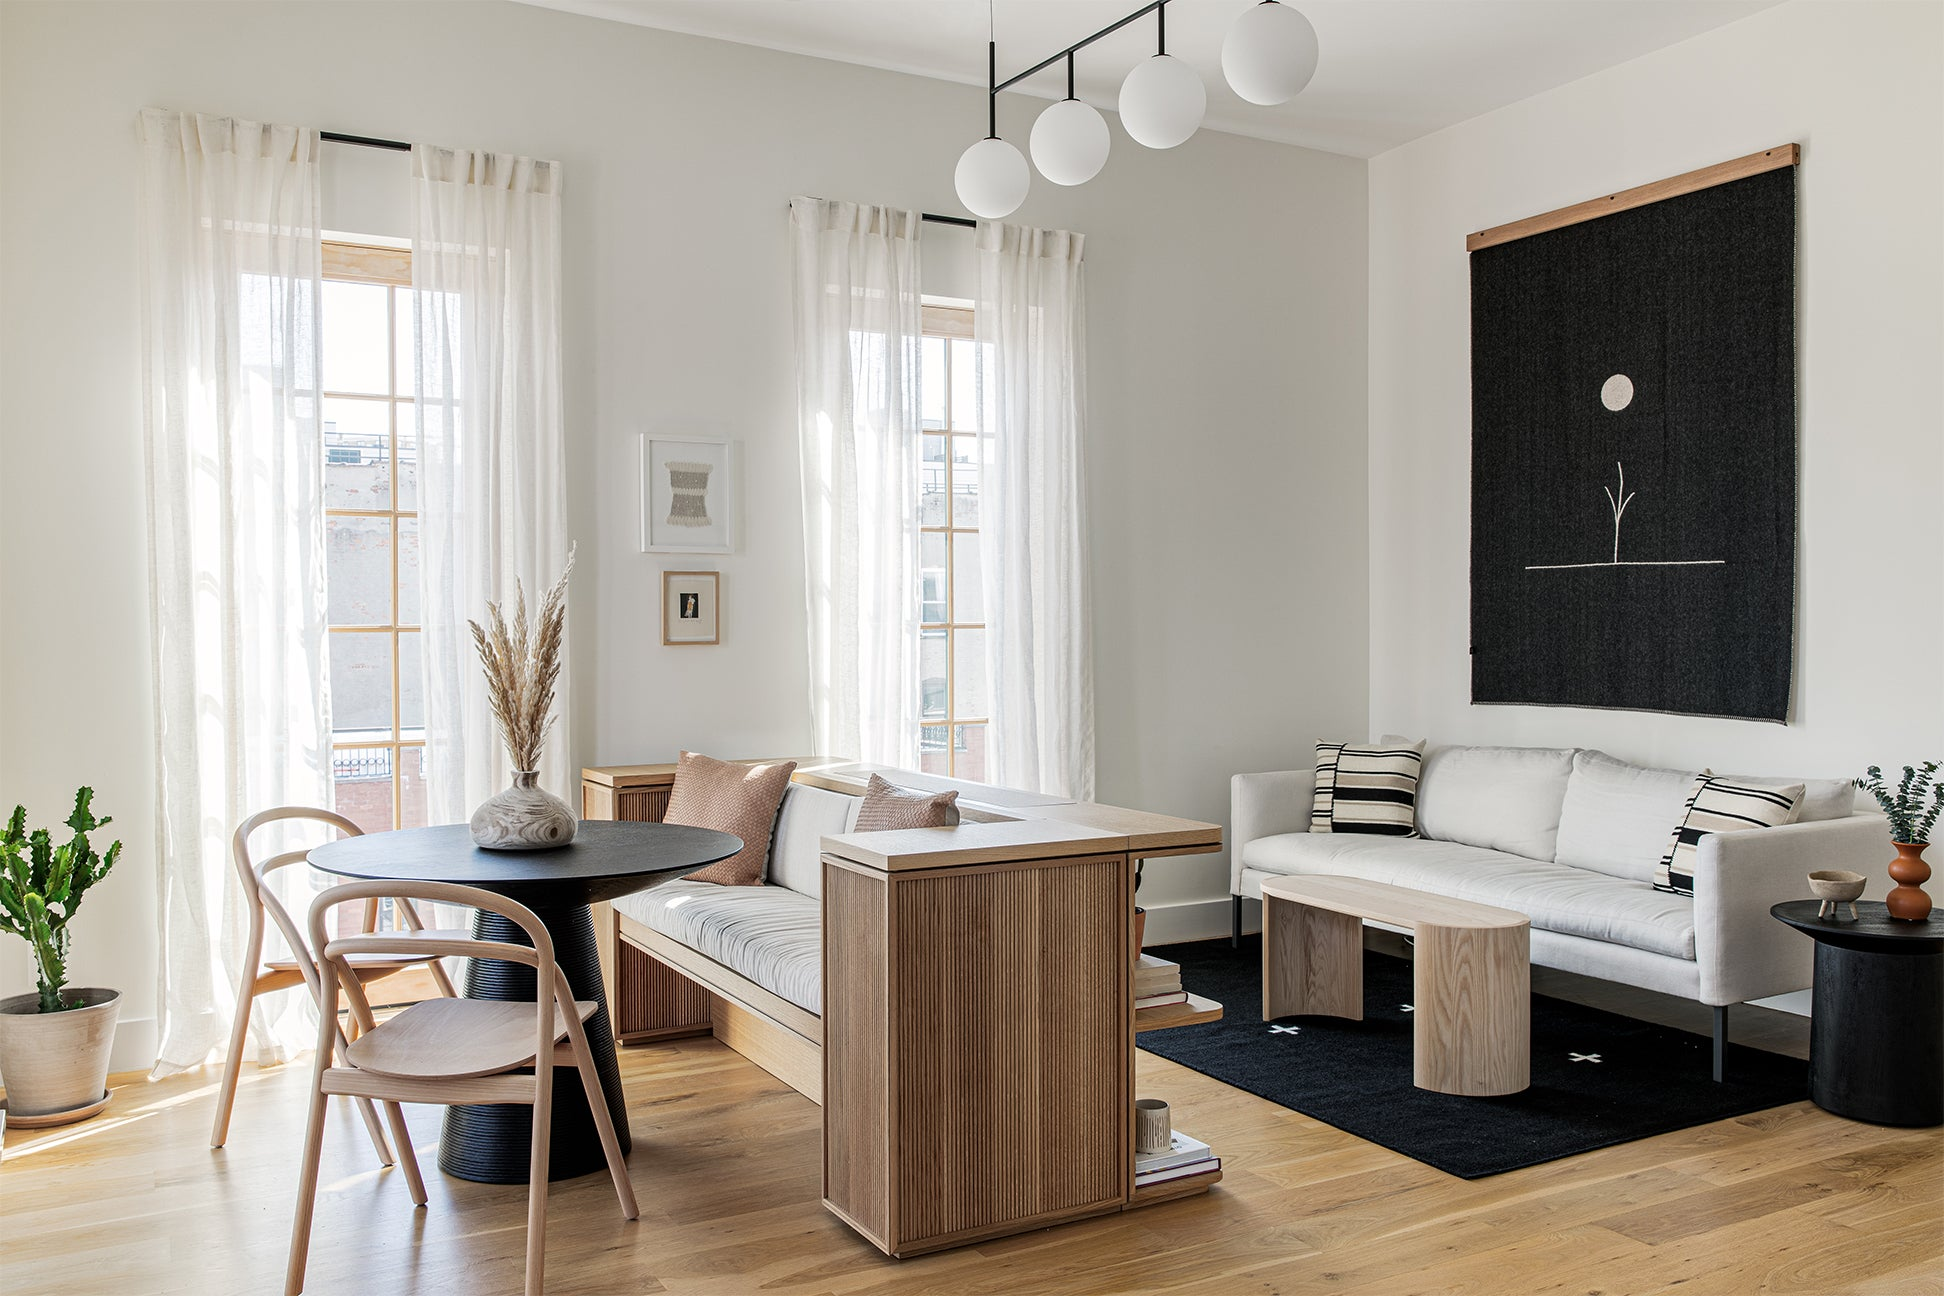 Dining Banquette and TV Bench in Small Apartment